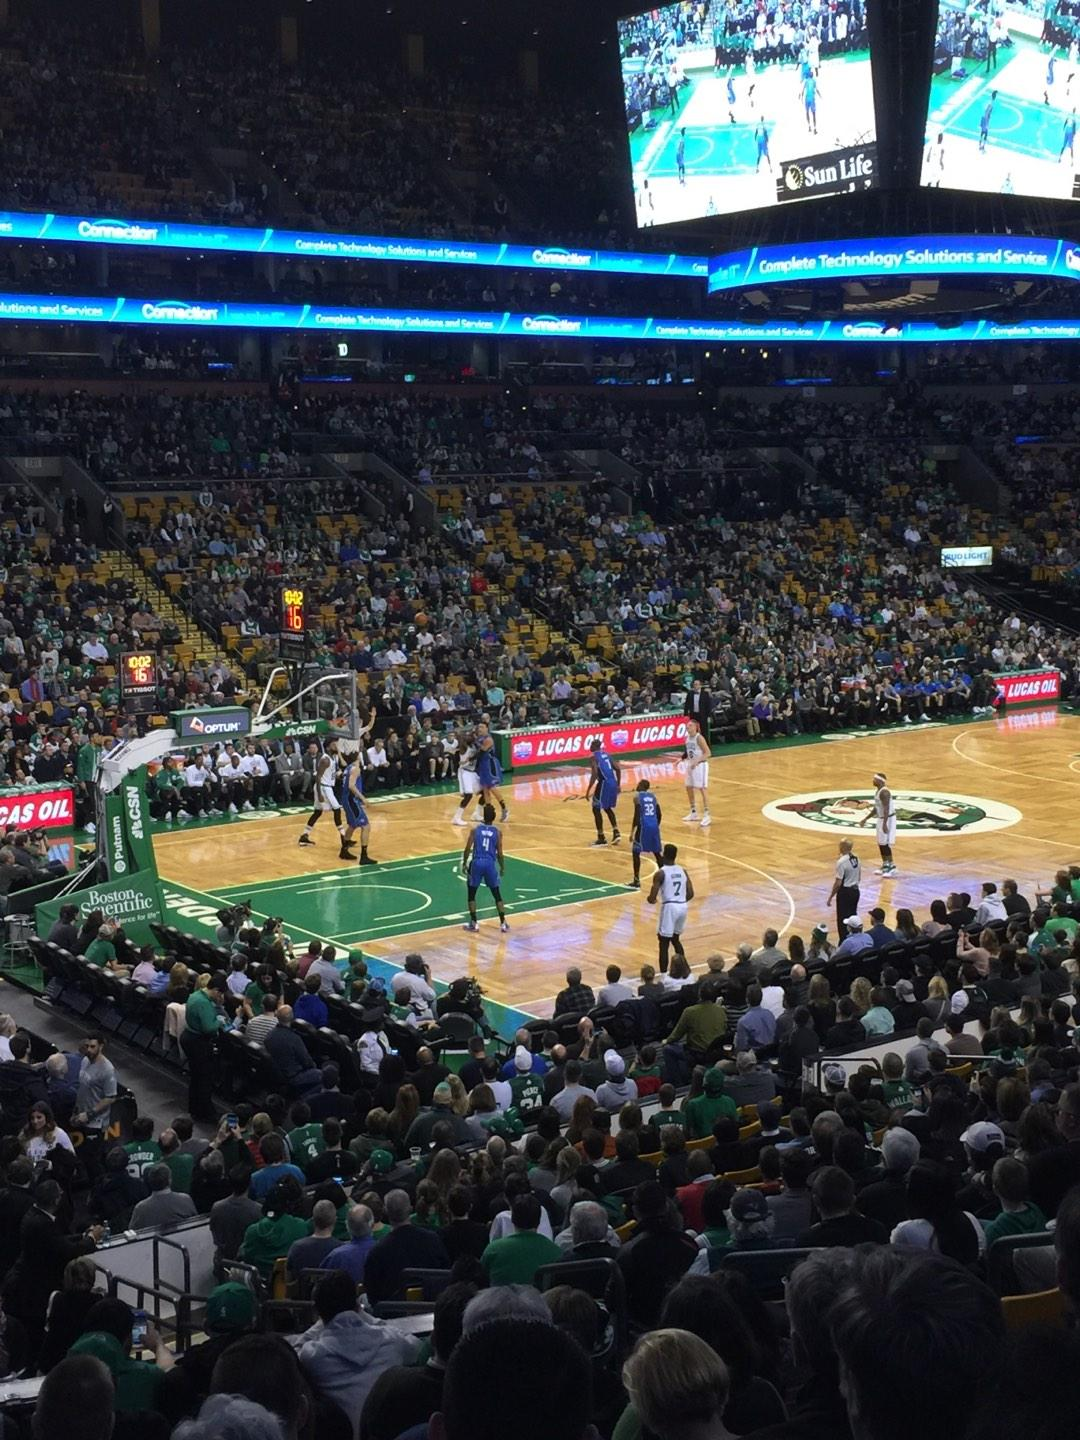 TD Garden Section Loge 15W Row 15 Seat 6